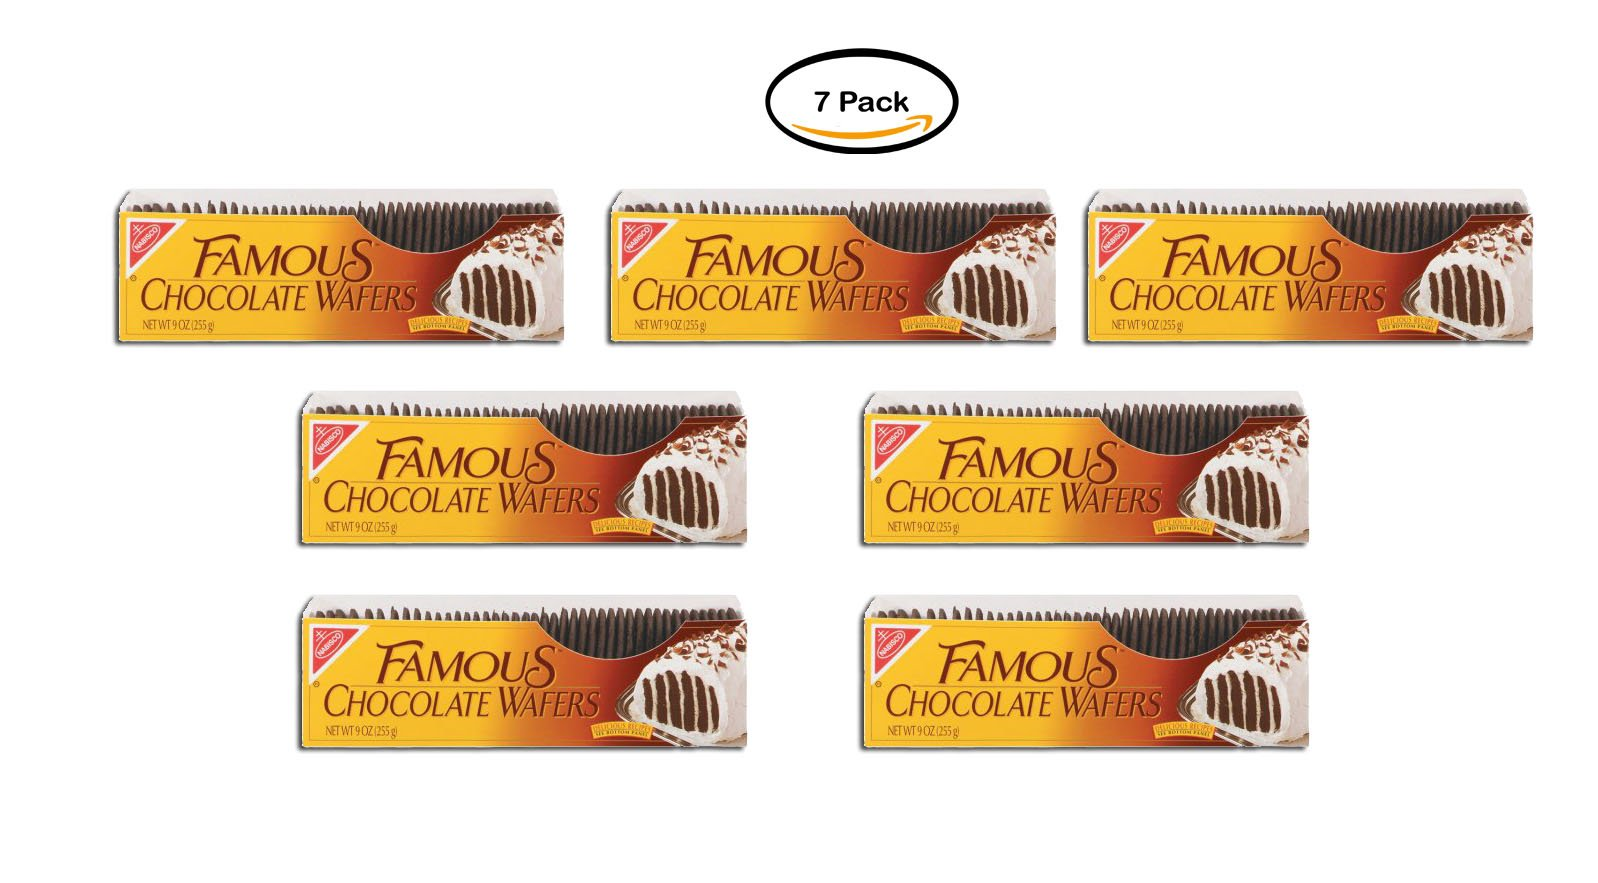 PACK OF 7 - Nabisco Famous Chocolate Wafers, 9 oz